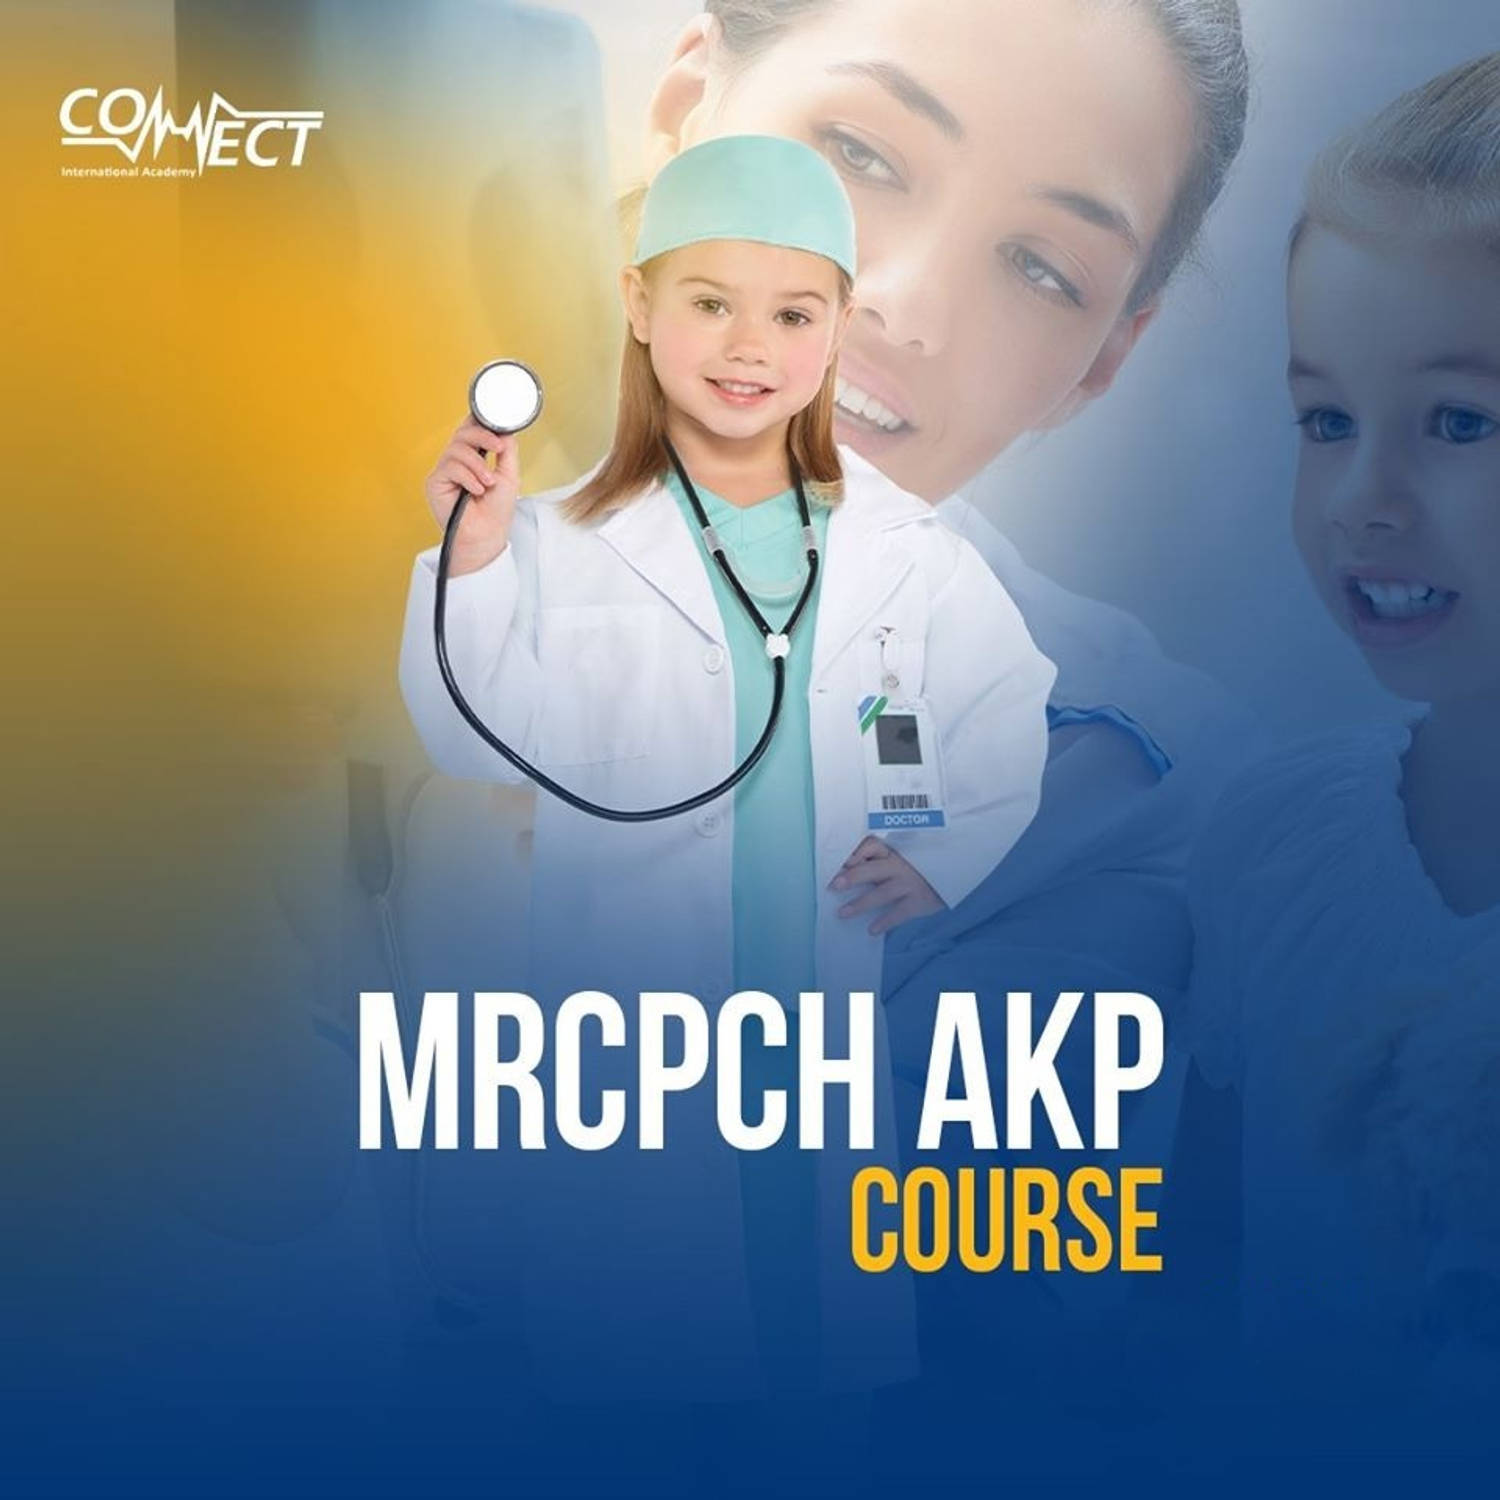 MRCPch 2 AKP Course (Recorded)